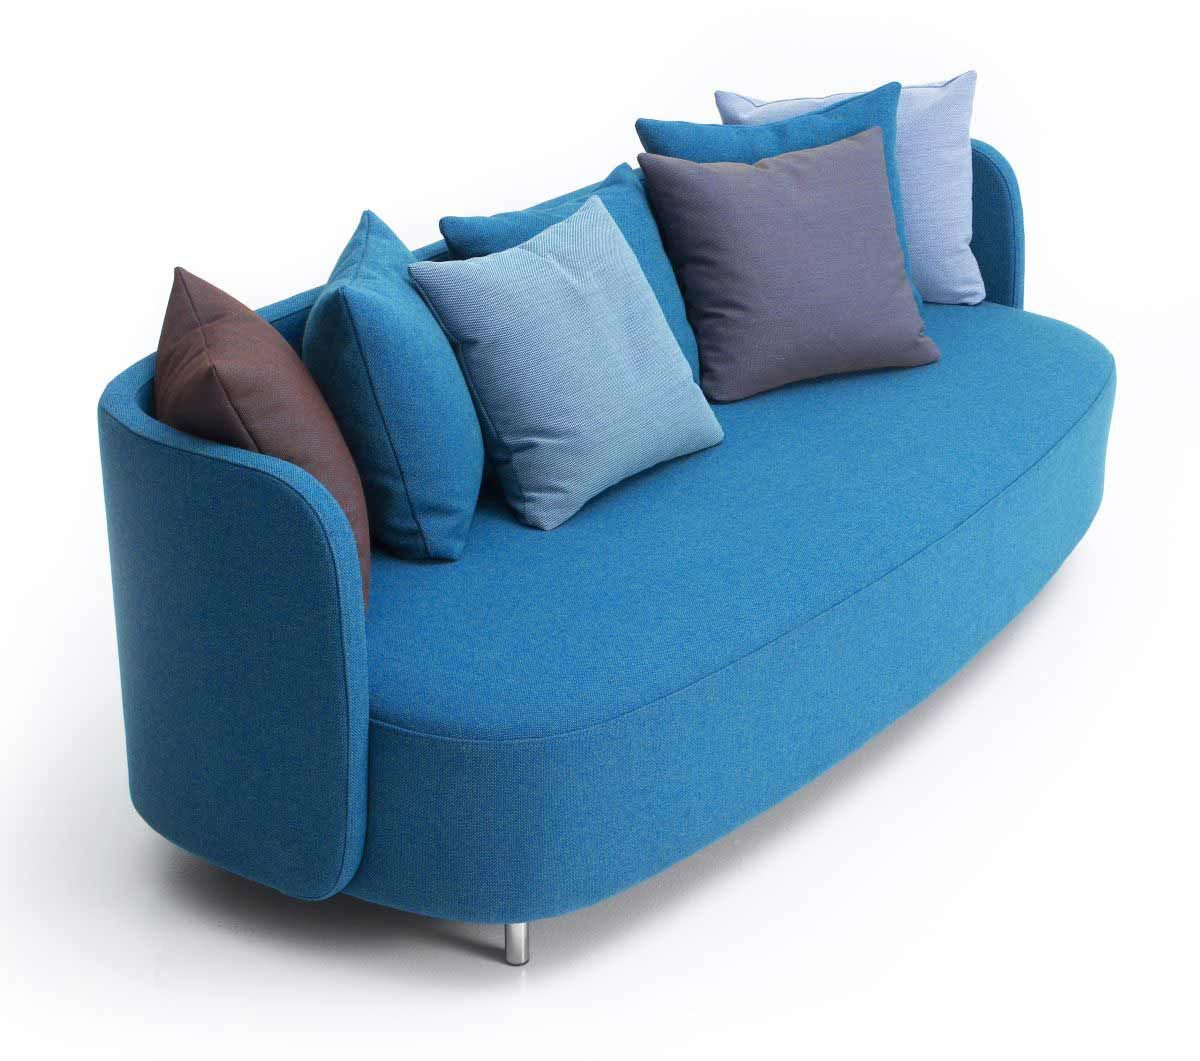 Cool Couches For Bedrooms Minimalist Interior Designs For Living Rooms  Blue Living Room .